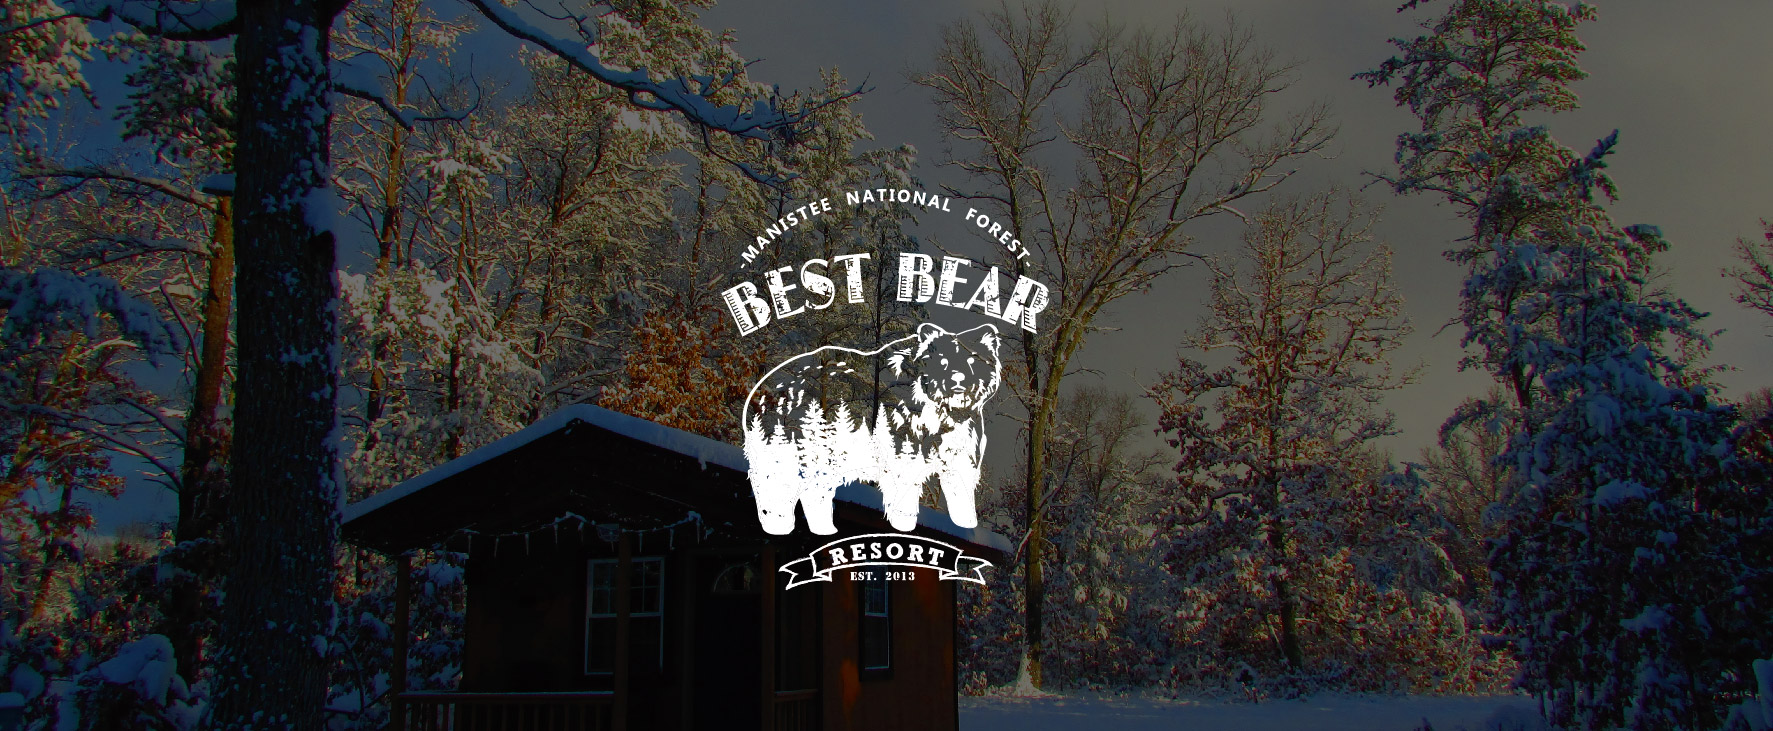 hotel cabins rv park best bear lodge u0026 campground baldwin irons